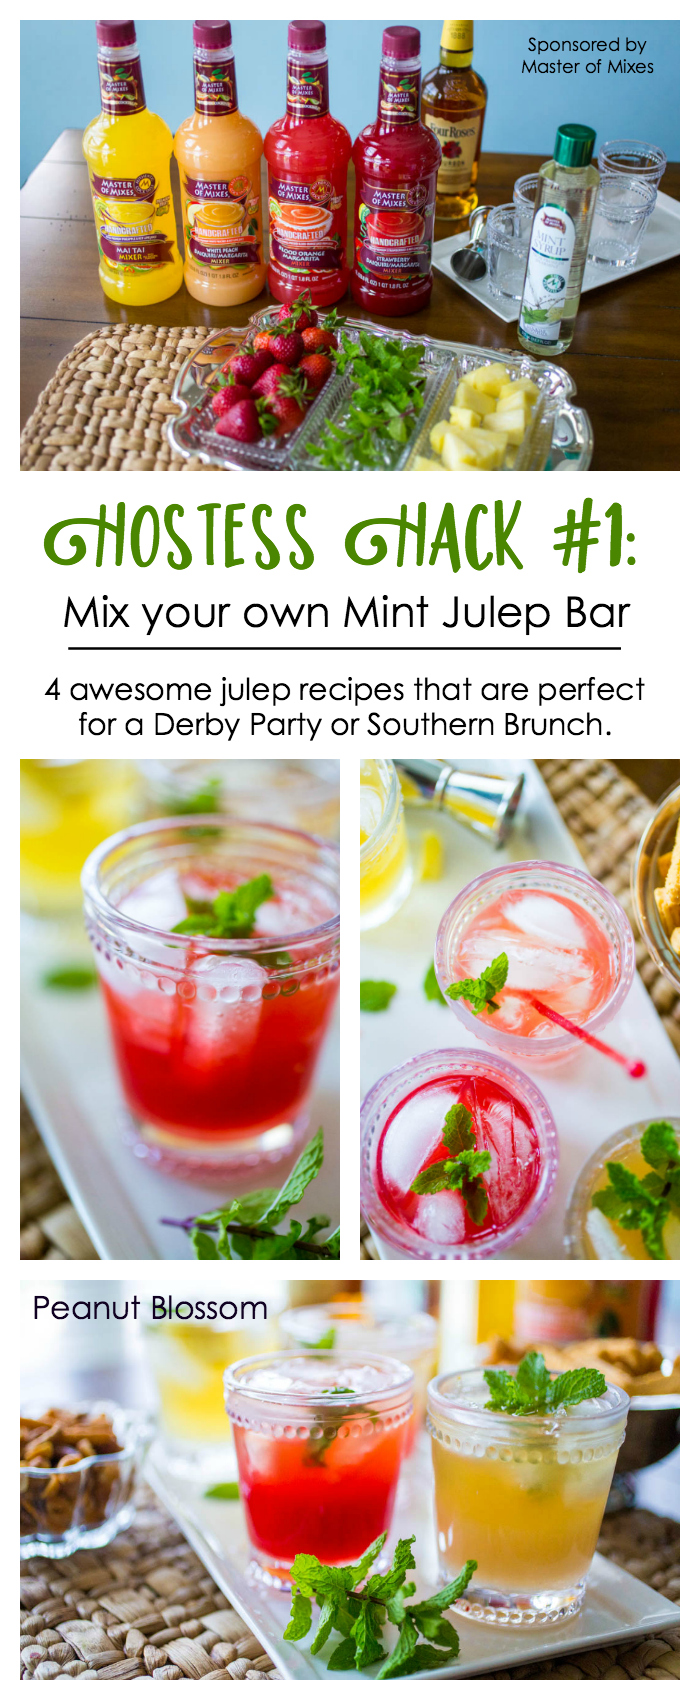 10 hostess hacks for the easiest Kentucky Derby Party ever: Mix your own mint julep bar!